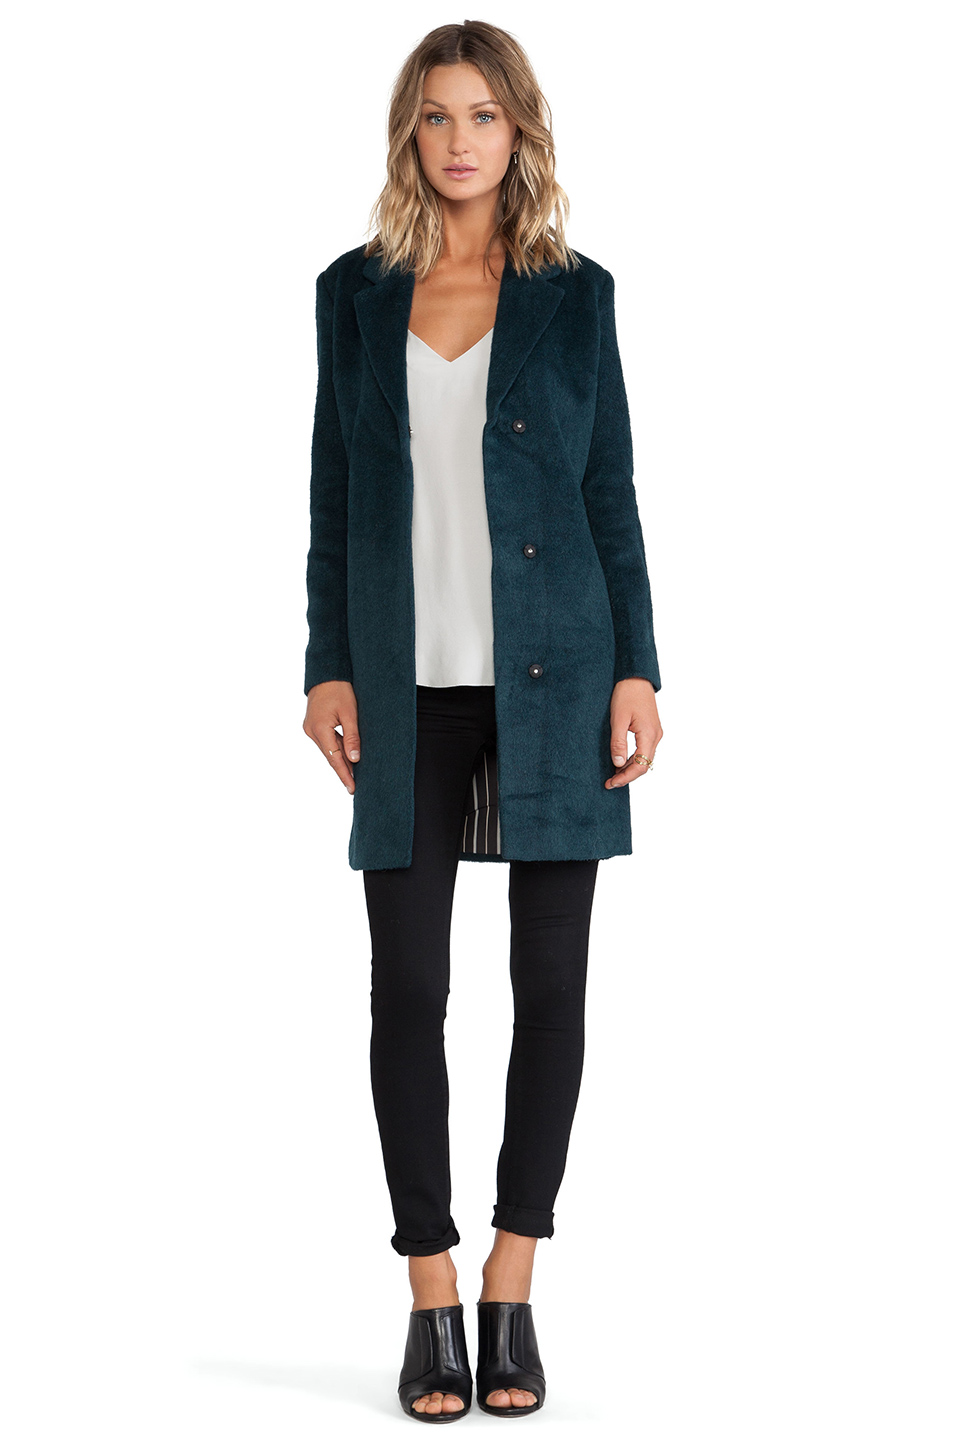 Scotch Wool Coat in Teal from REVOLVEclothing.com